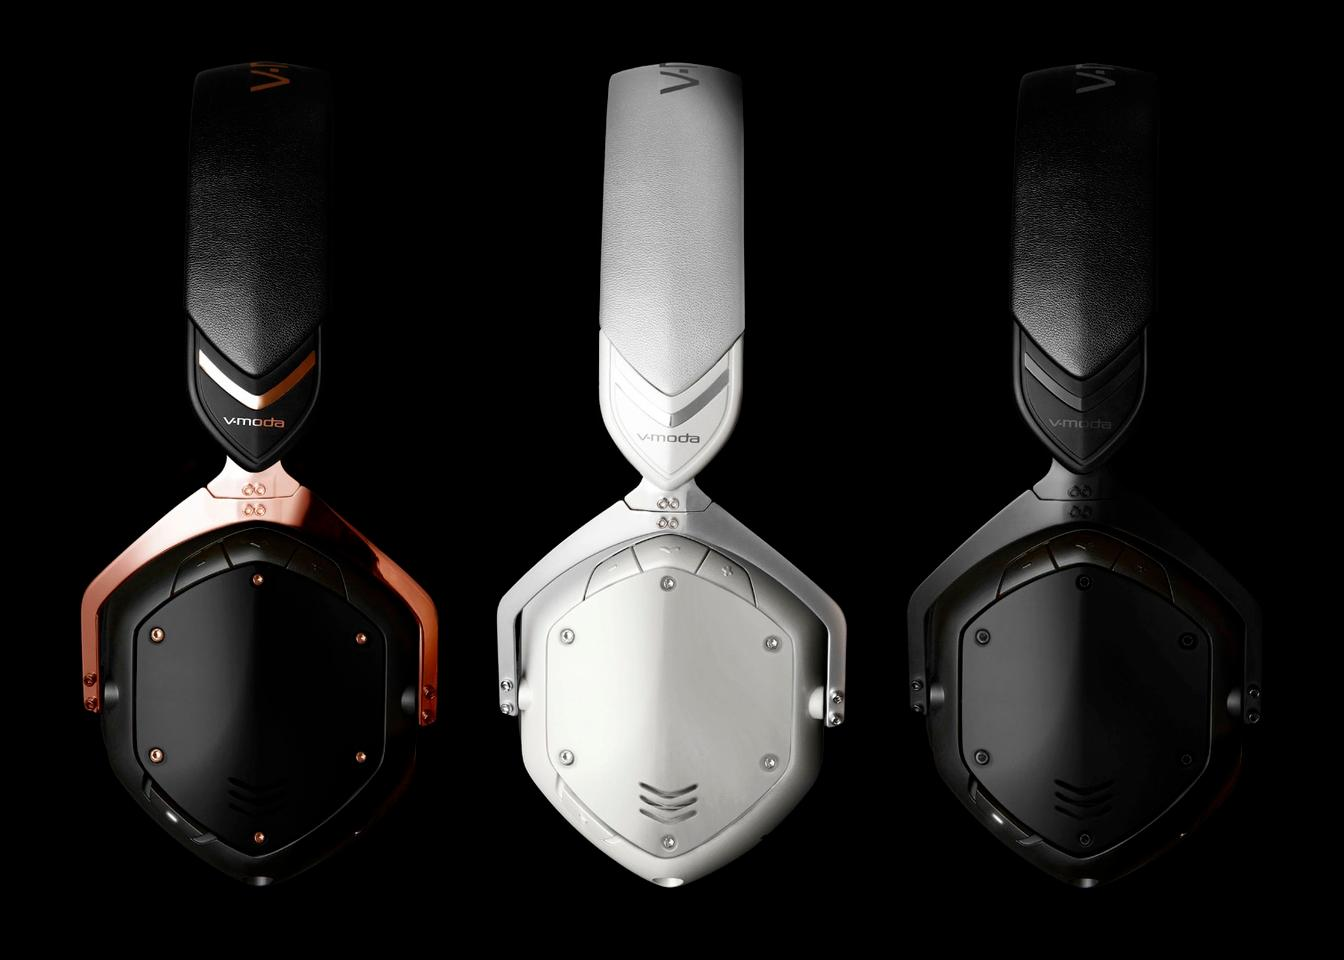 The new Crossfade 2 Wireless headphones benefit from improved battery life and come in new colors